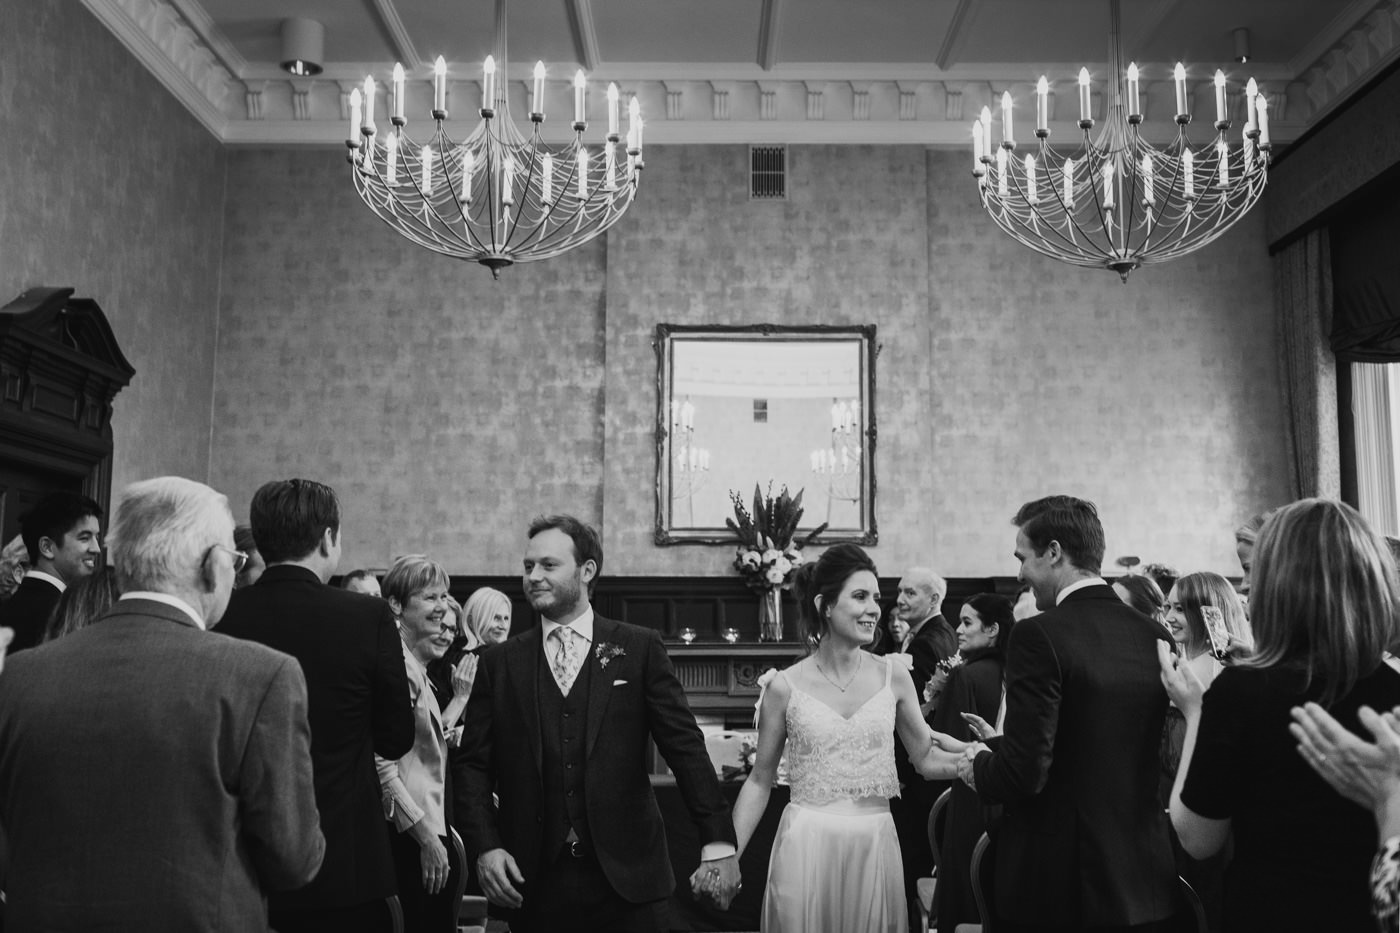 A black and white photo of a newlywed couple celebrating their wedding day with the guest at Bloomsbury House in London